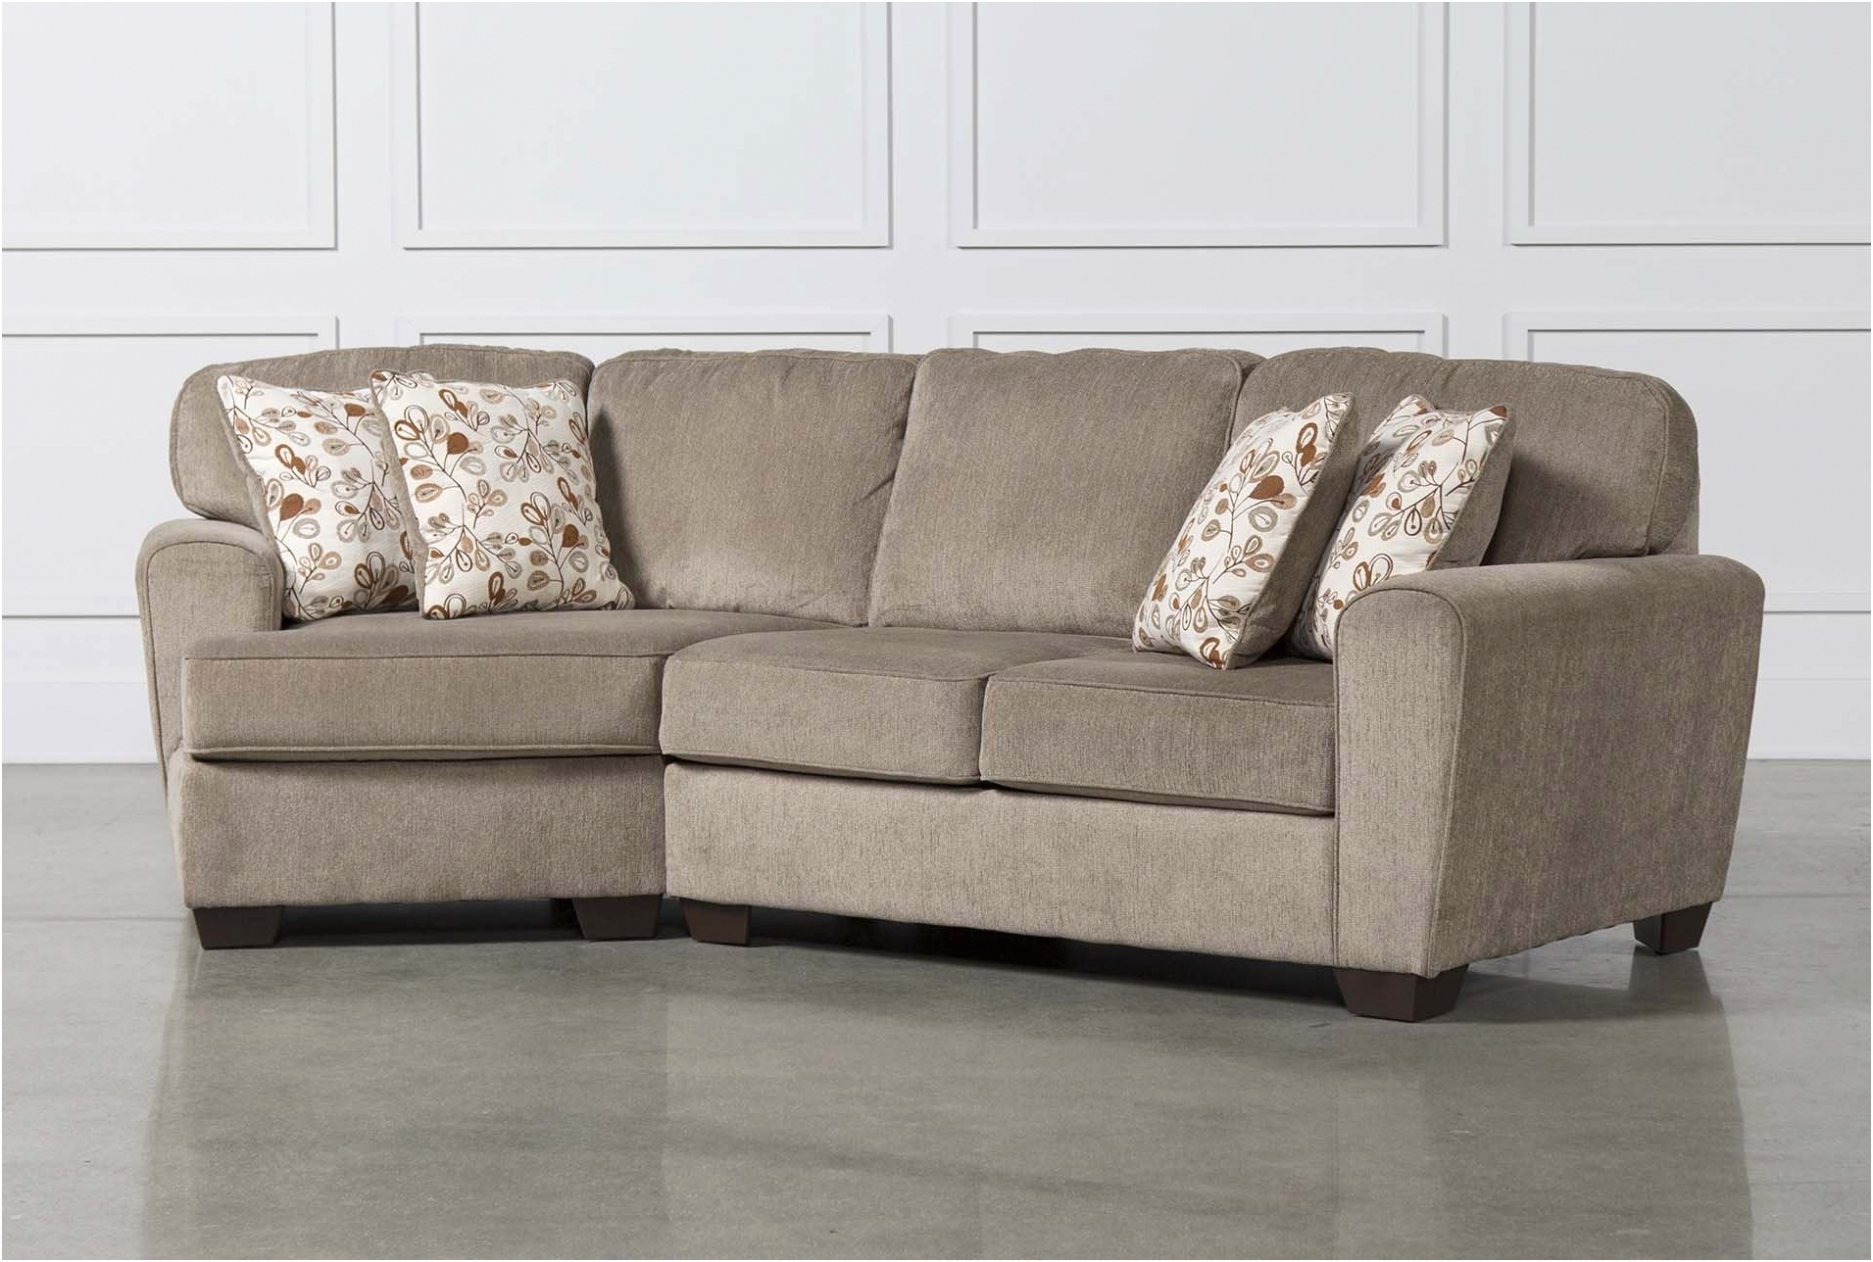 Furniture: Fresh Sectional Sofa With Cuddler Chaise New – Sofa For Sectional Sofas With Cuddler Chaise (Image 4 of 10)